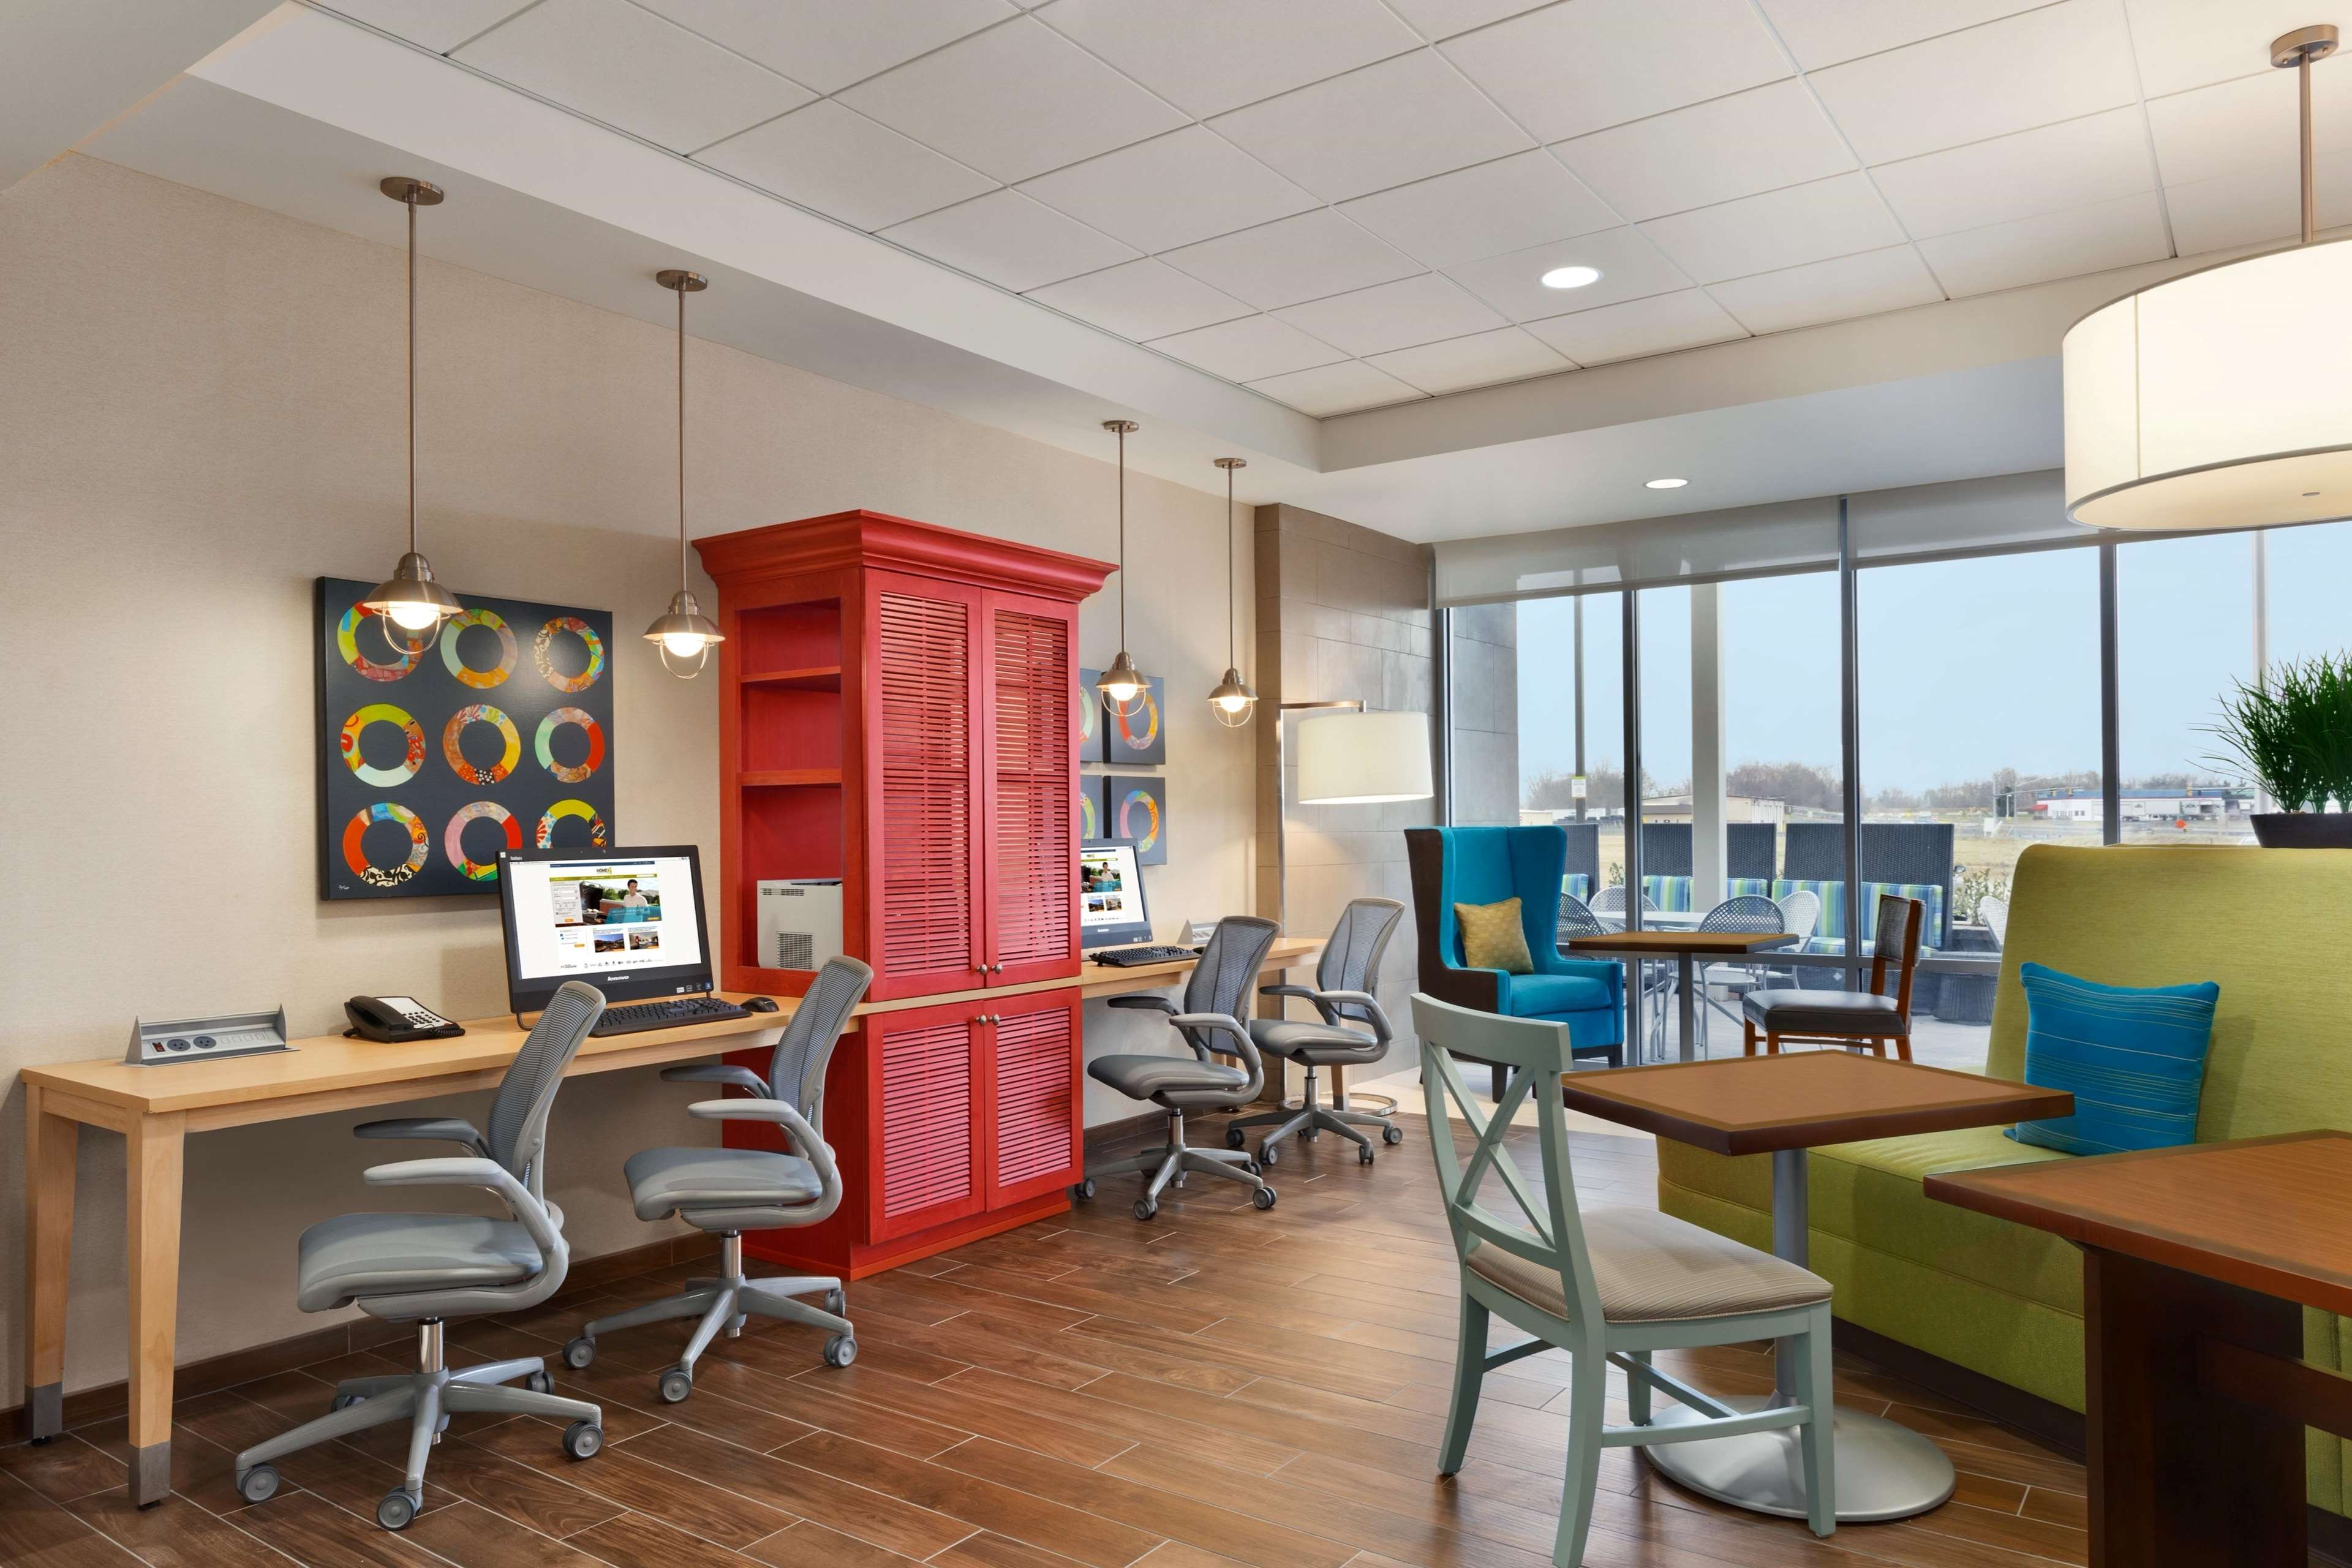 Home2 Suites by Hilton Baltimore / Aberdeen, MD image 15